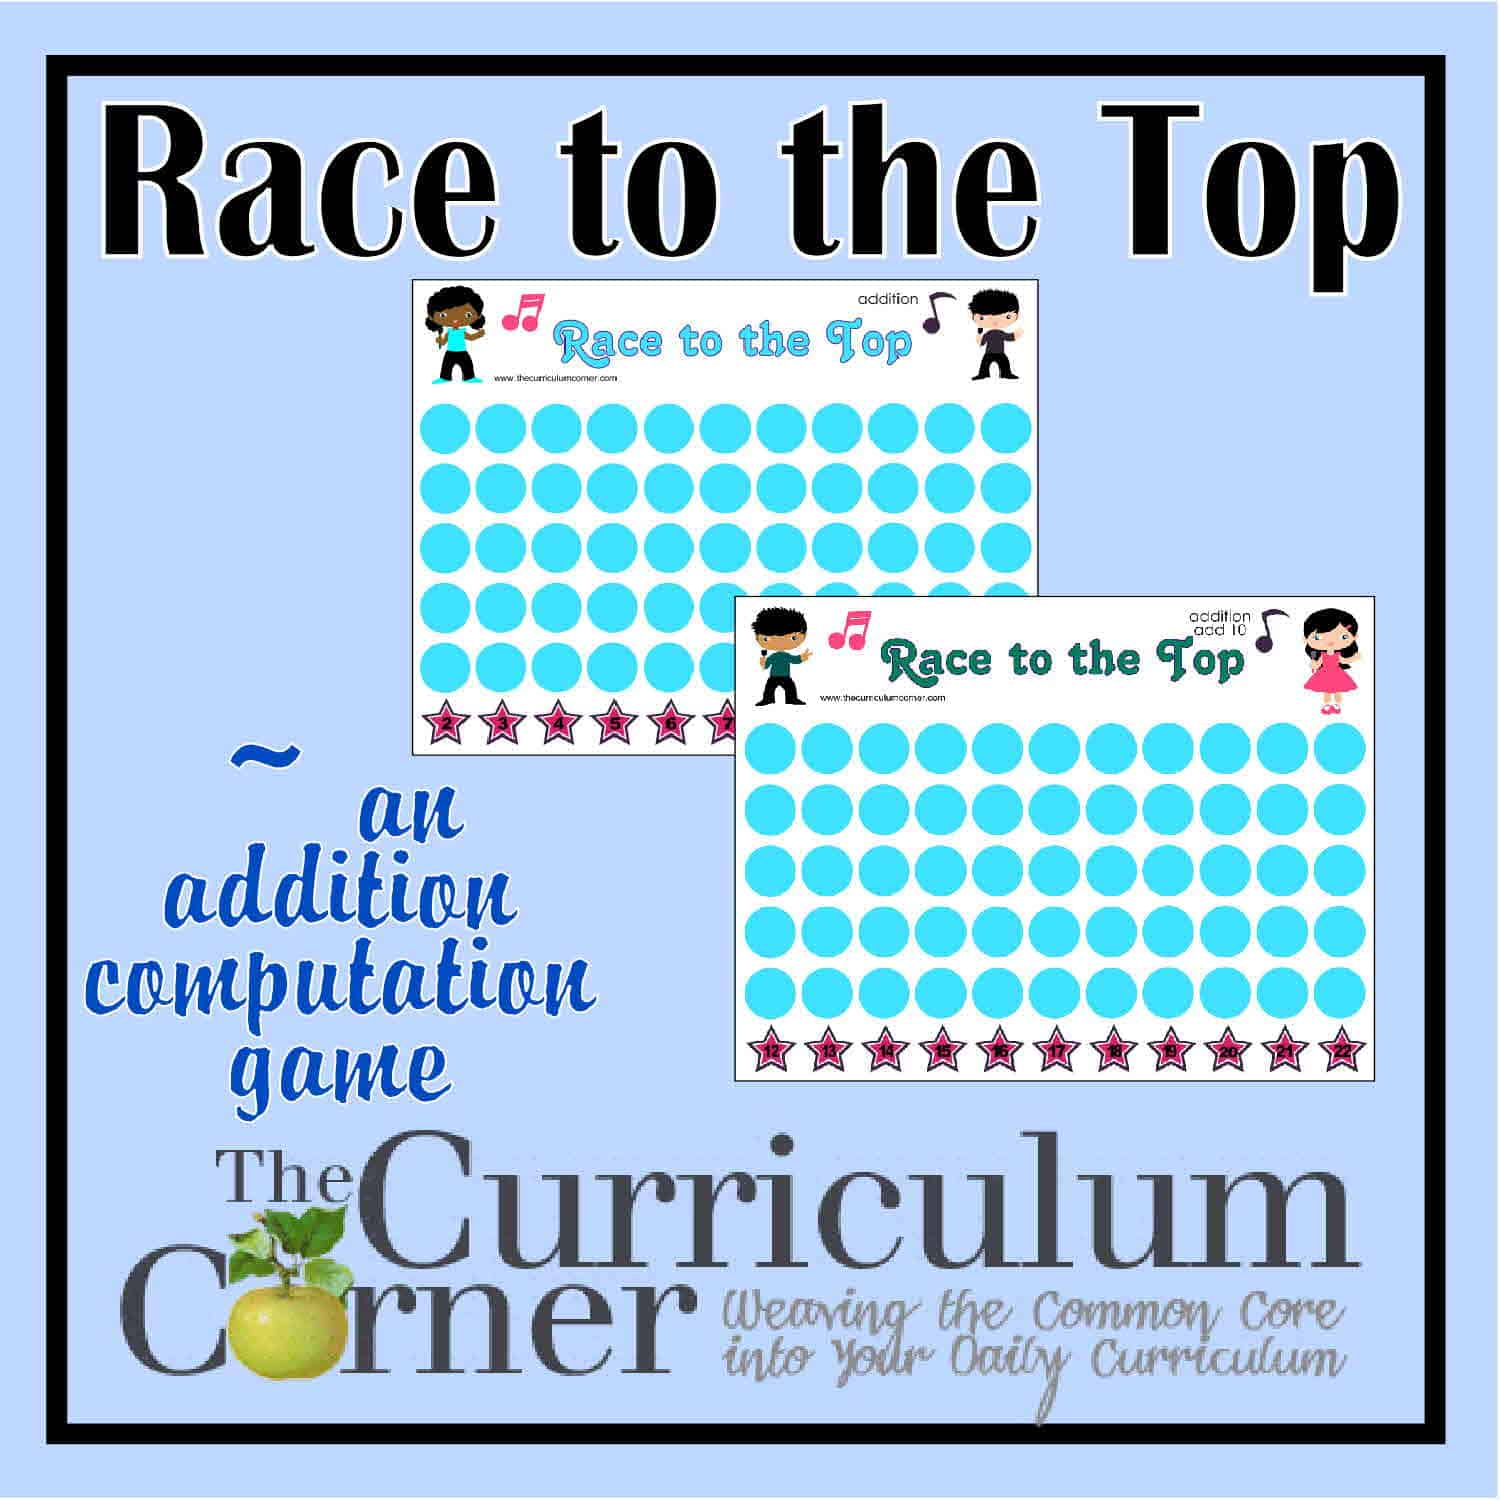 Race to the Top Addition Game